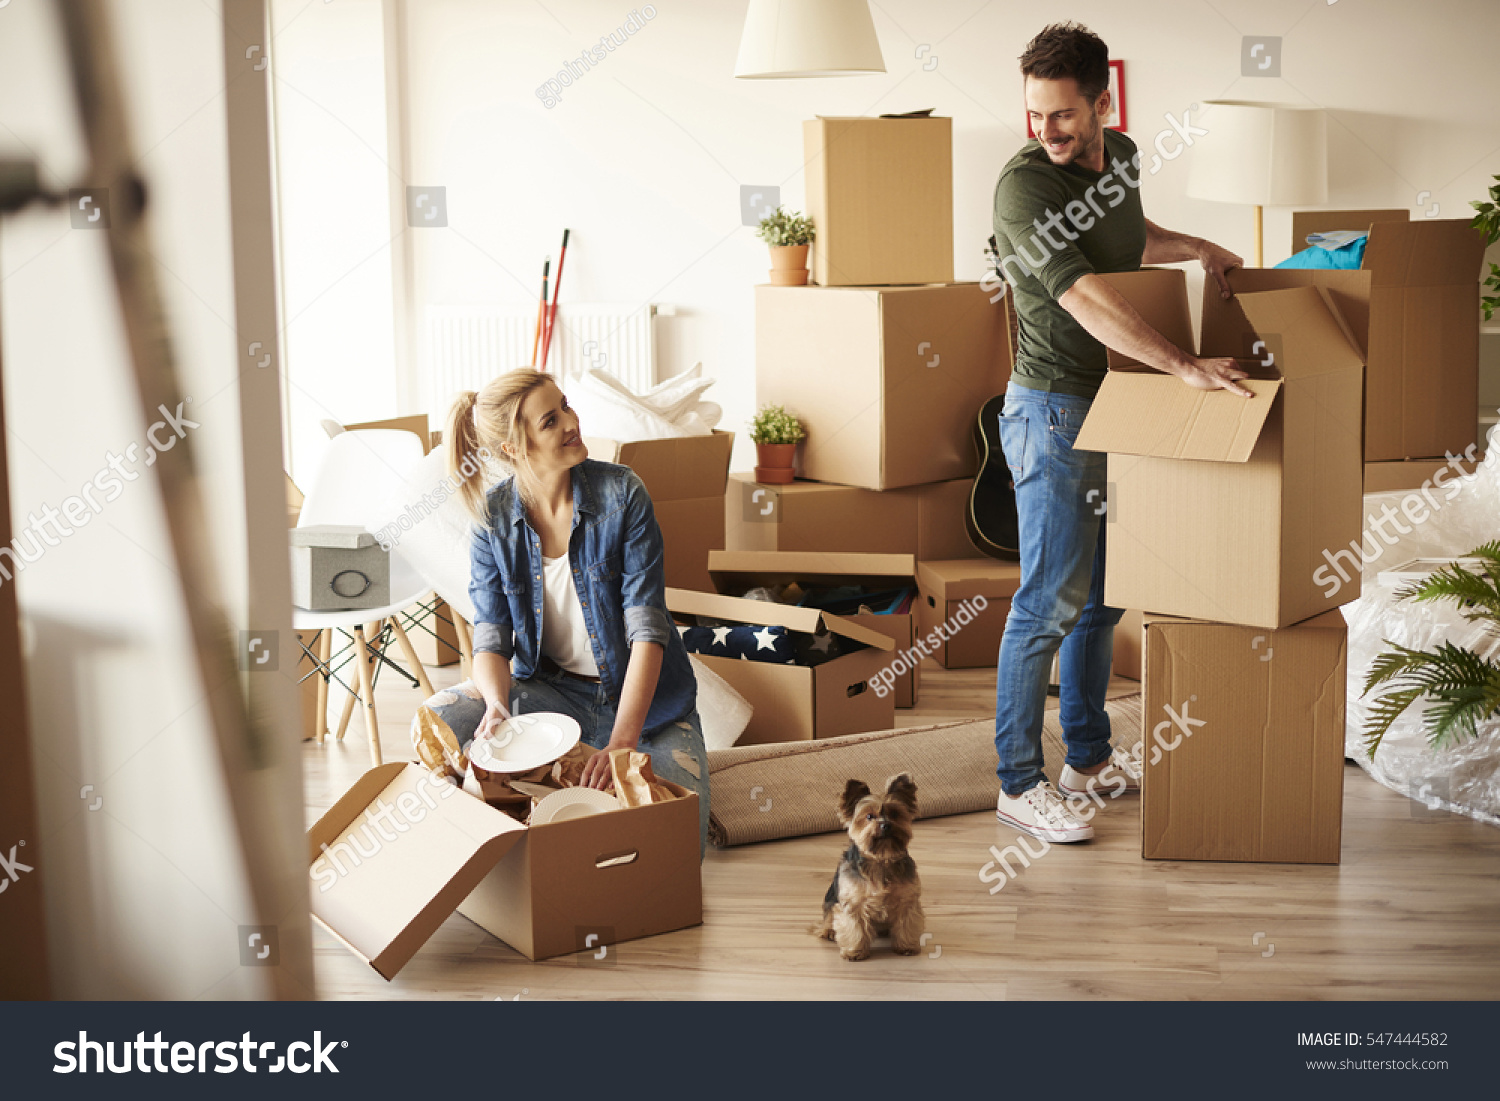 Young Couple Apartment Young Couple New Apartment Small Dog Stock Photo 547444582